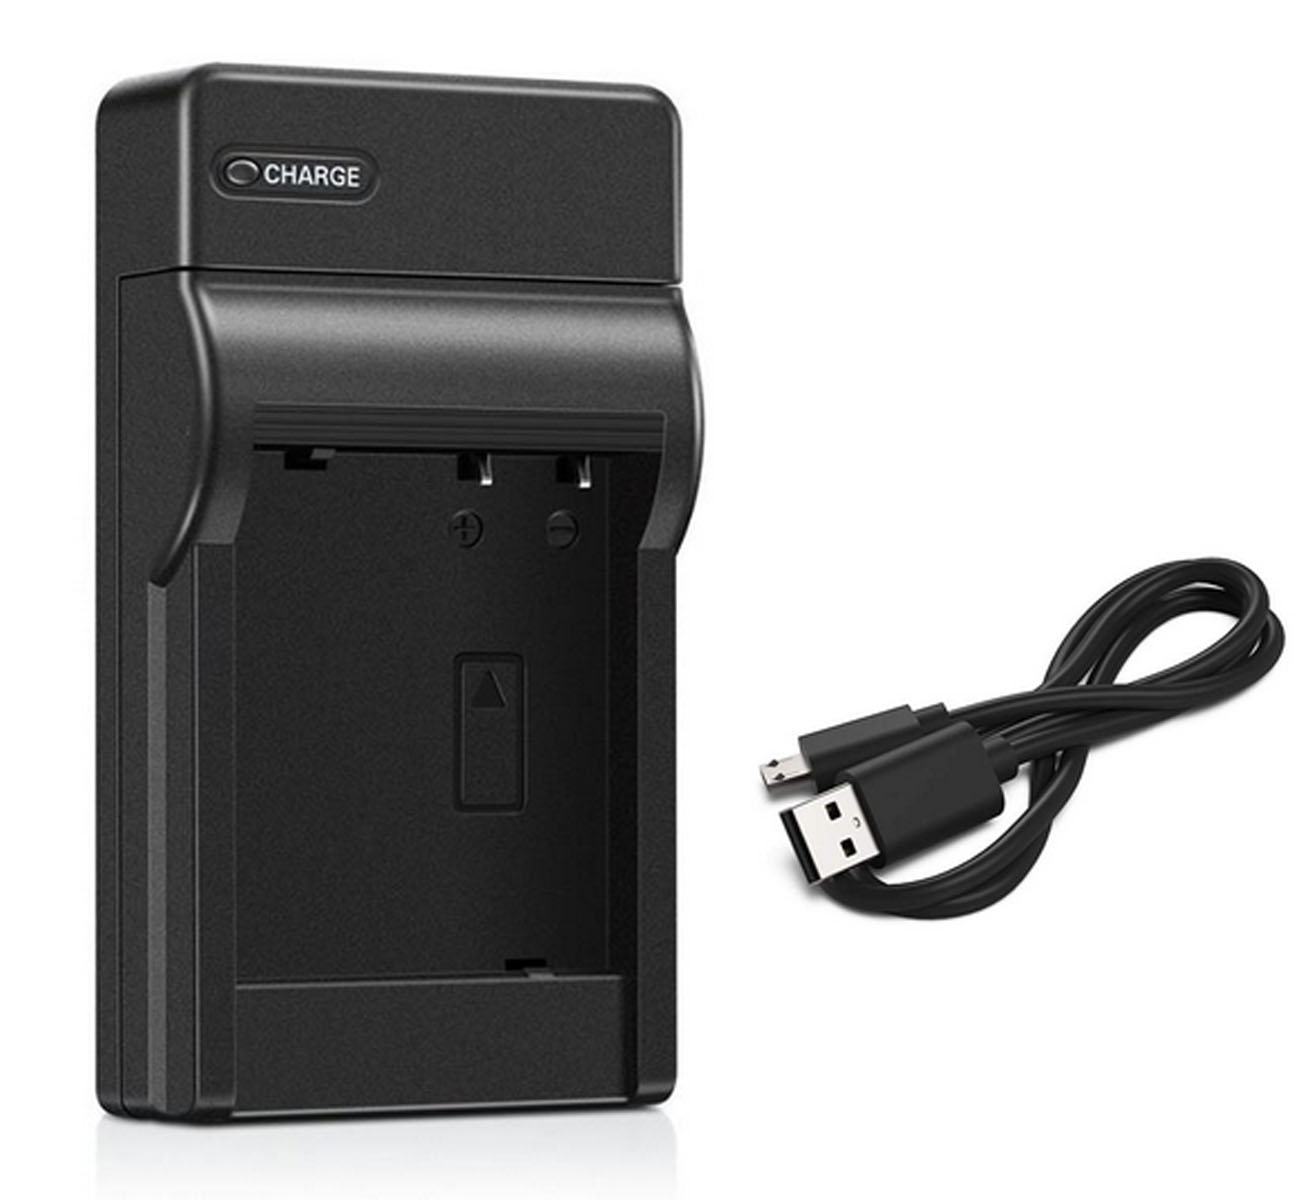 Battery Charger for Canon EOS6D, EOS7D, EOS60D, EOS60Da, EOS70D, EOS80D, EOS 6D, 7D, 60D, 60Da, 70D, 80D Digital SLR Camera